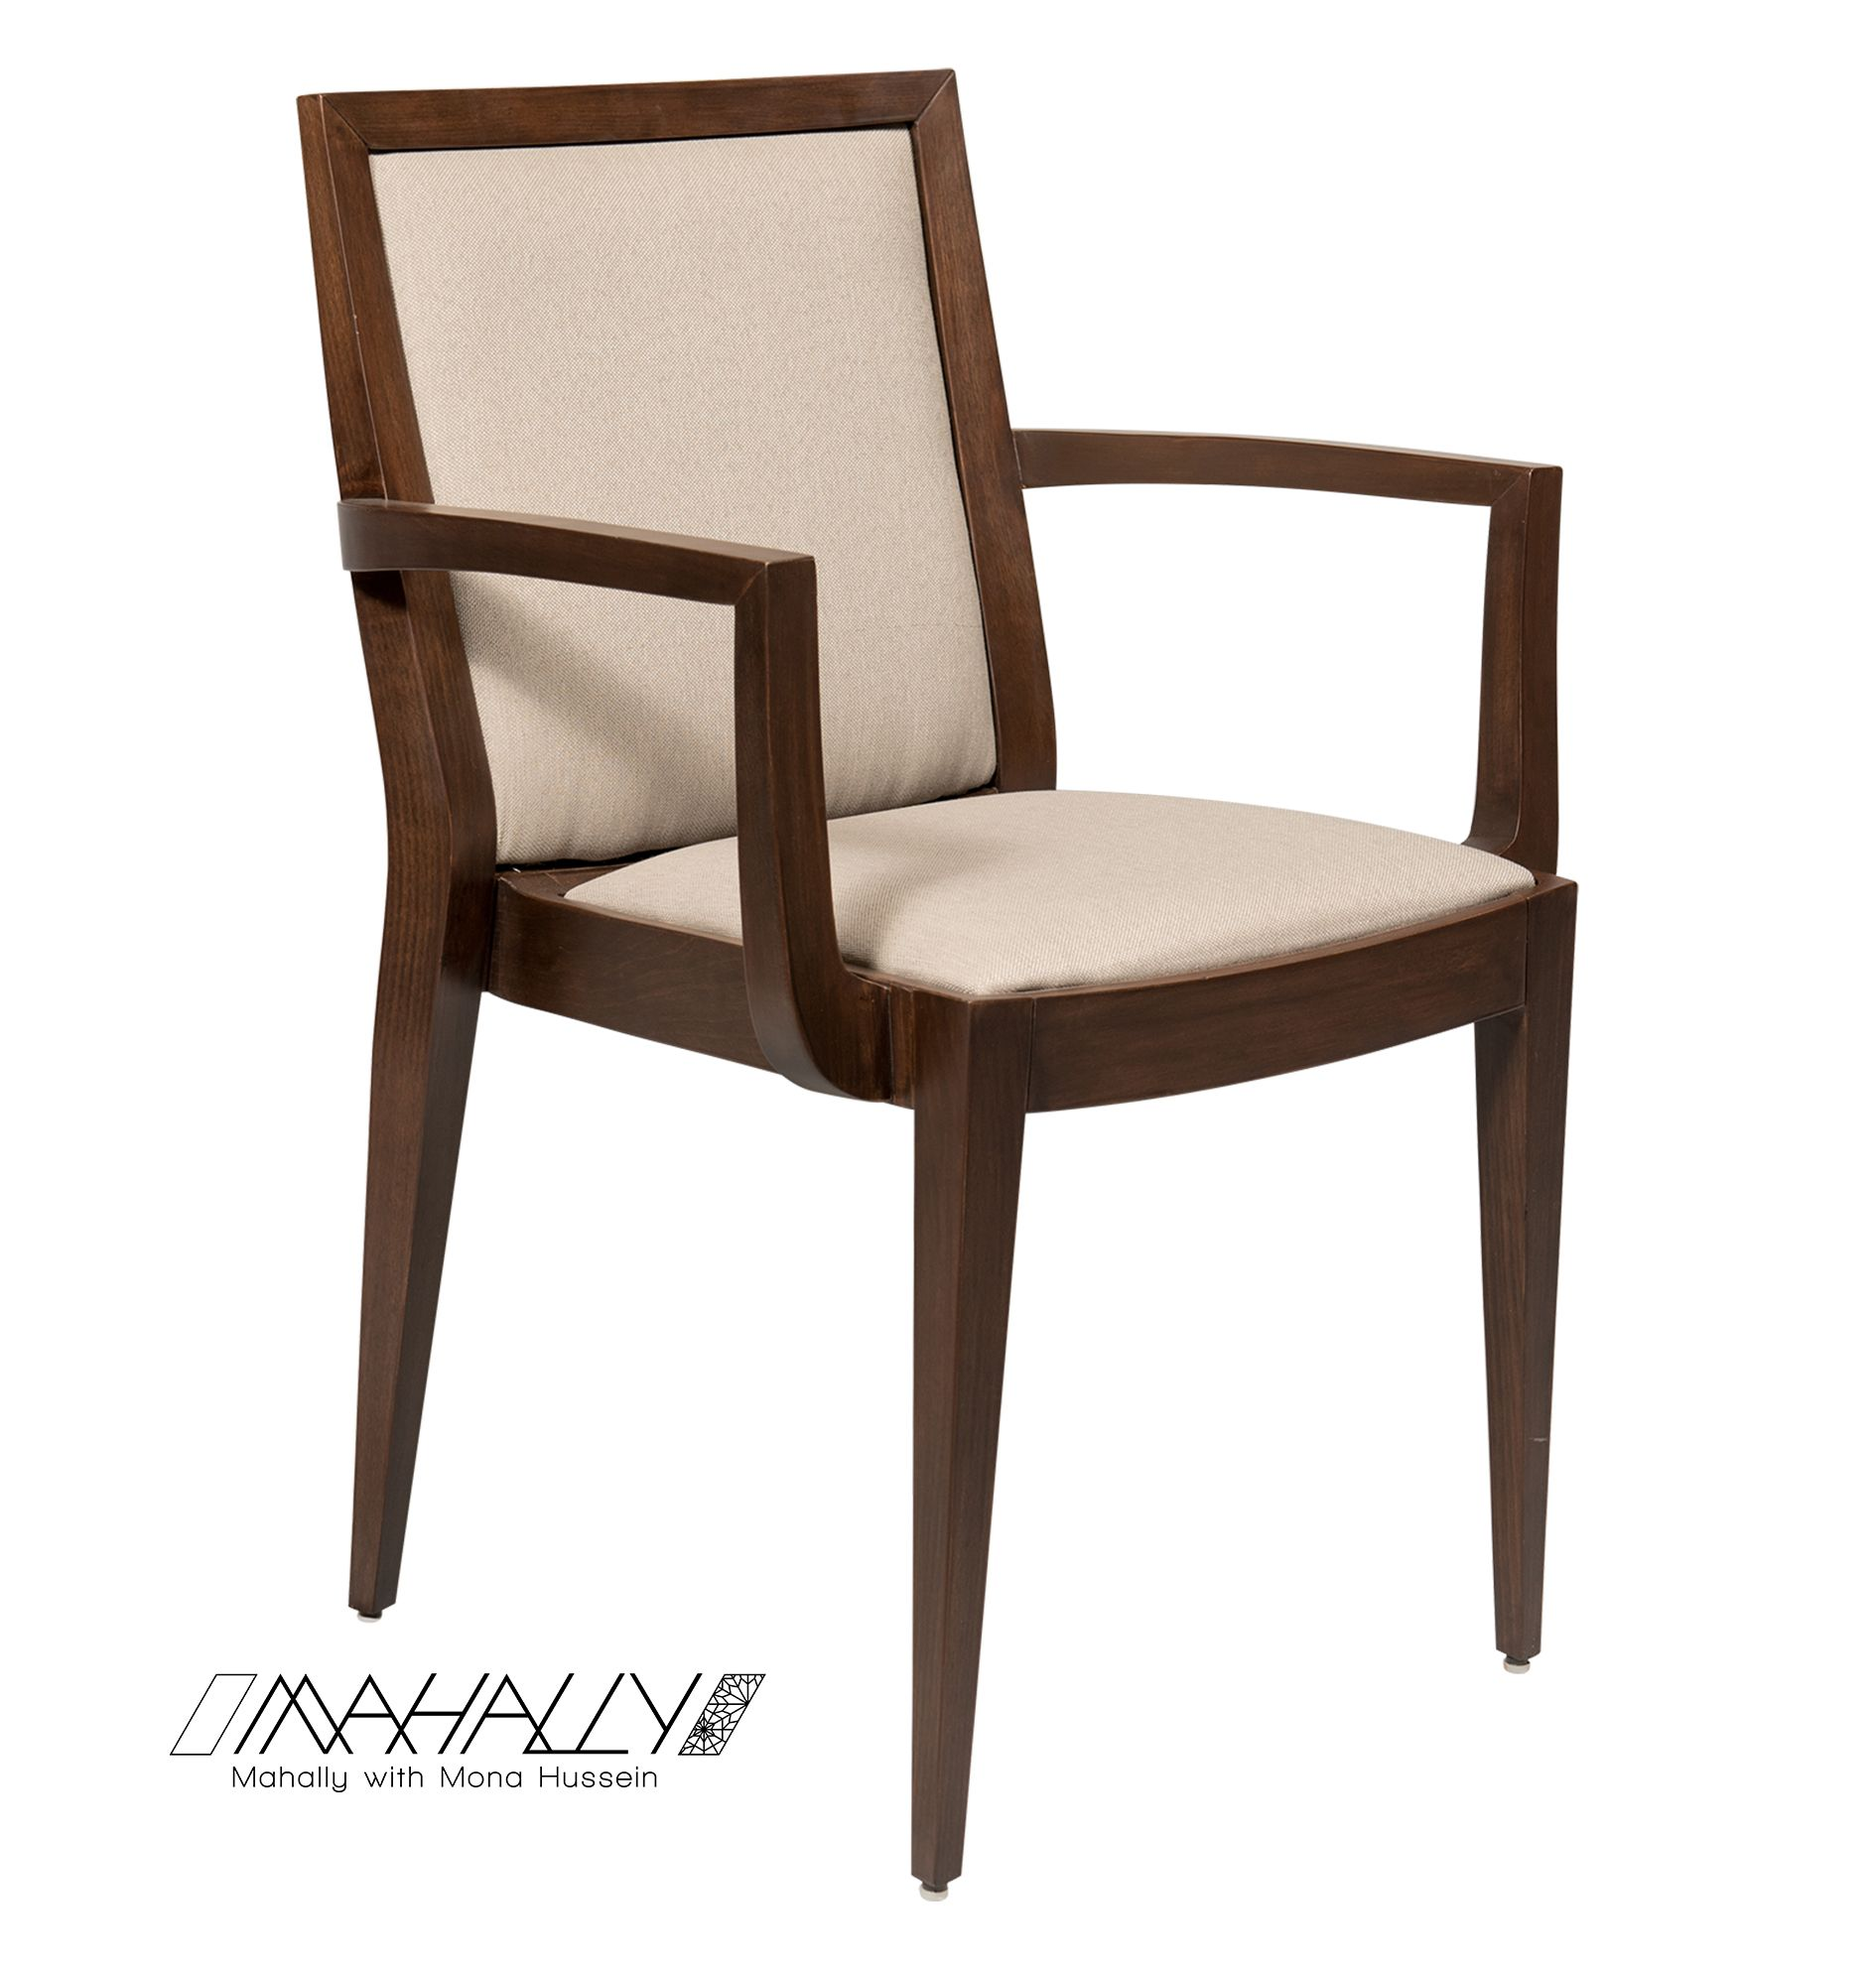 Dining Chair With Upholstered Seat And Back L 58 5 Cm W 45 5 Cm H 89 Cm Seat H 49 Cm Dining Chairs Chair L Shaped Sofa